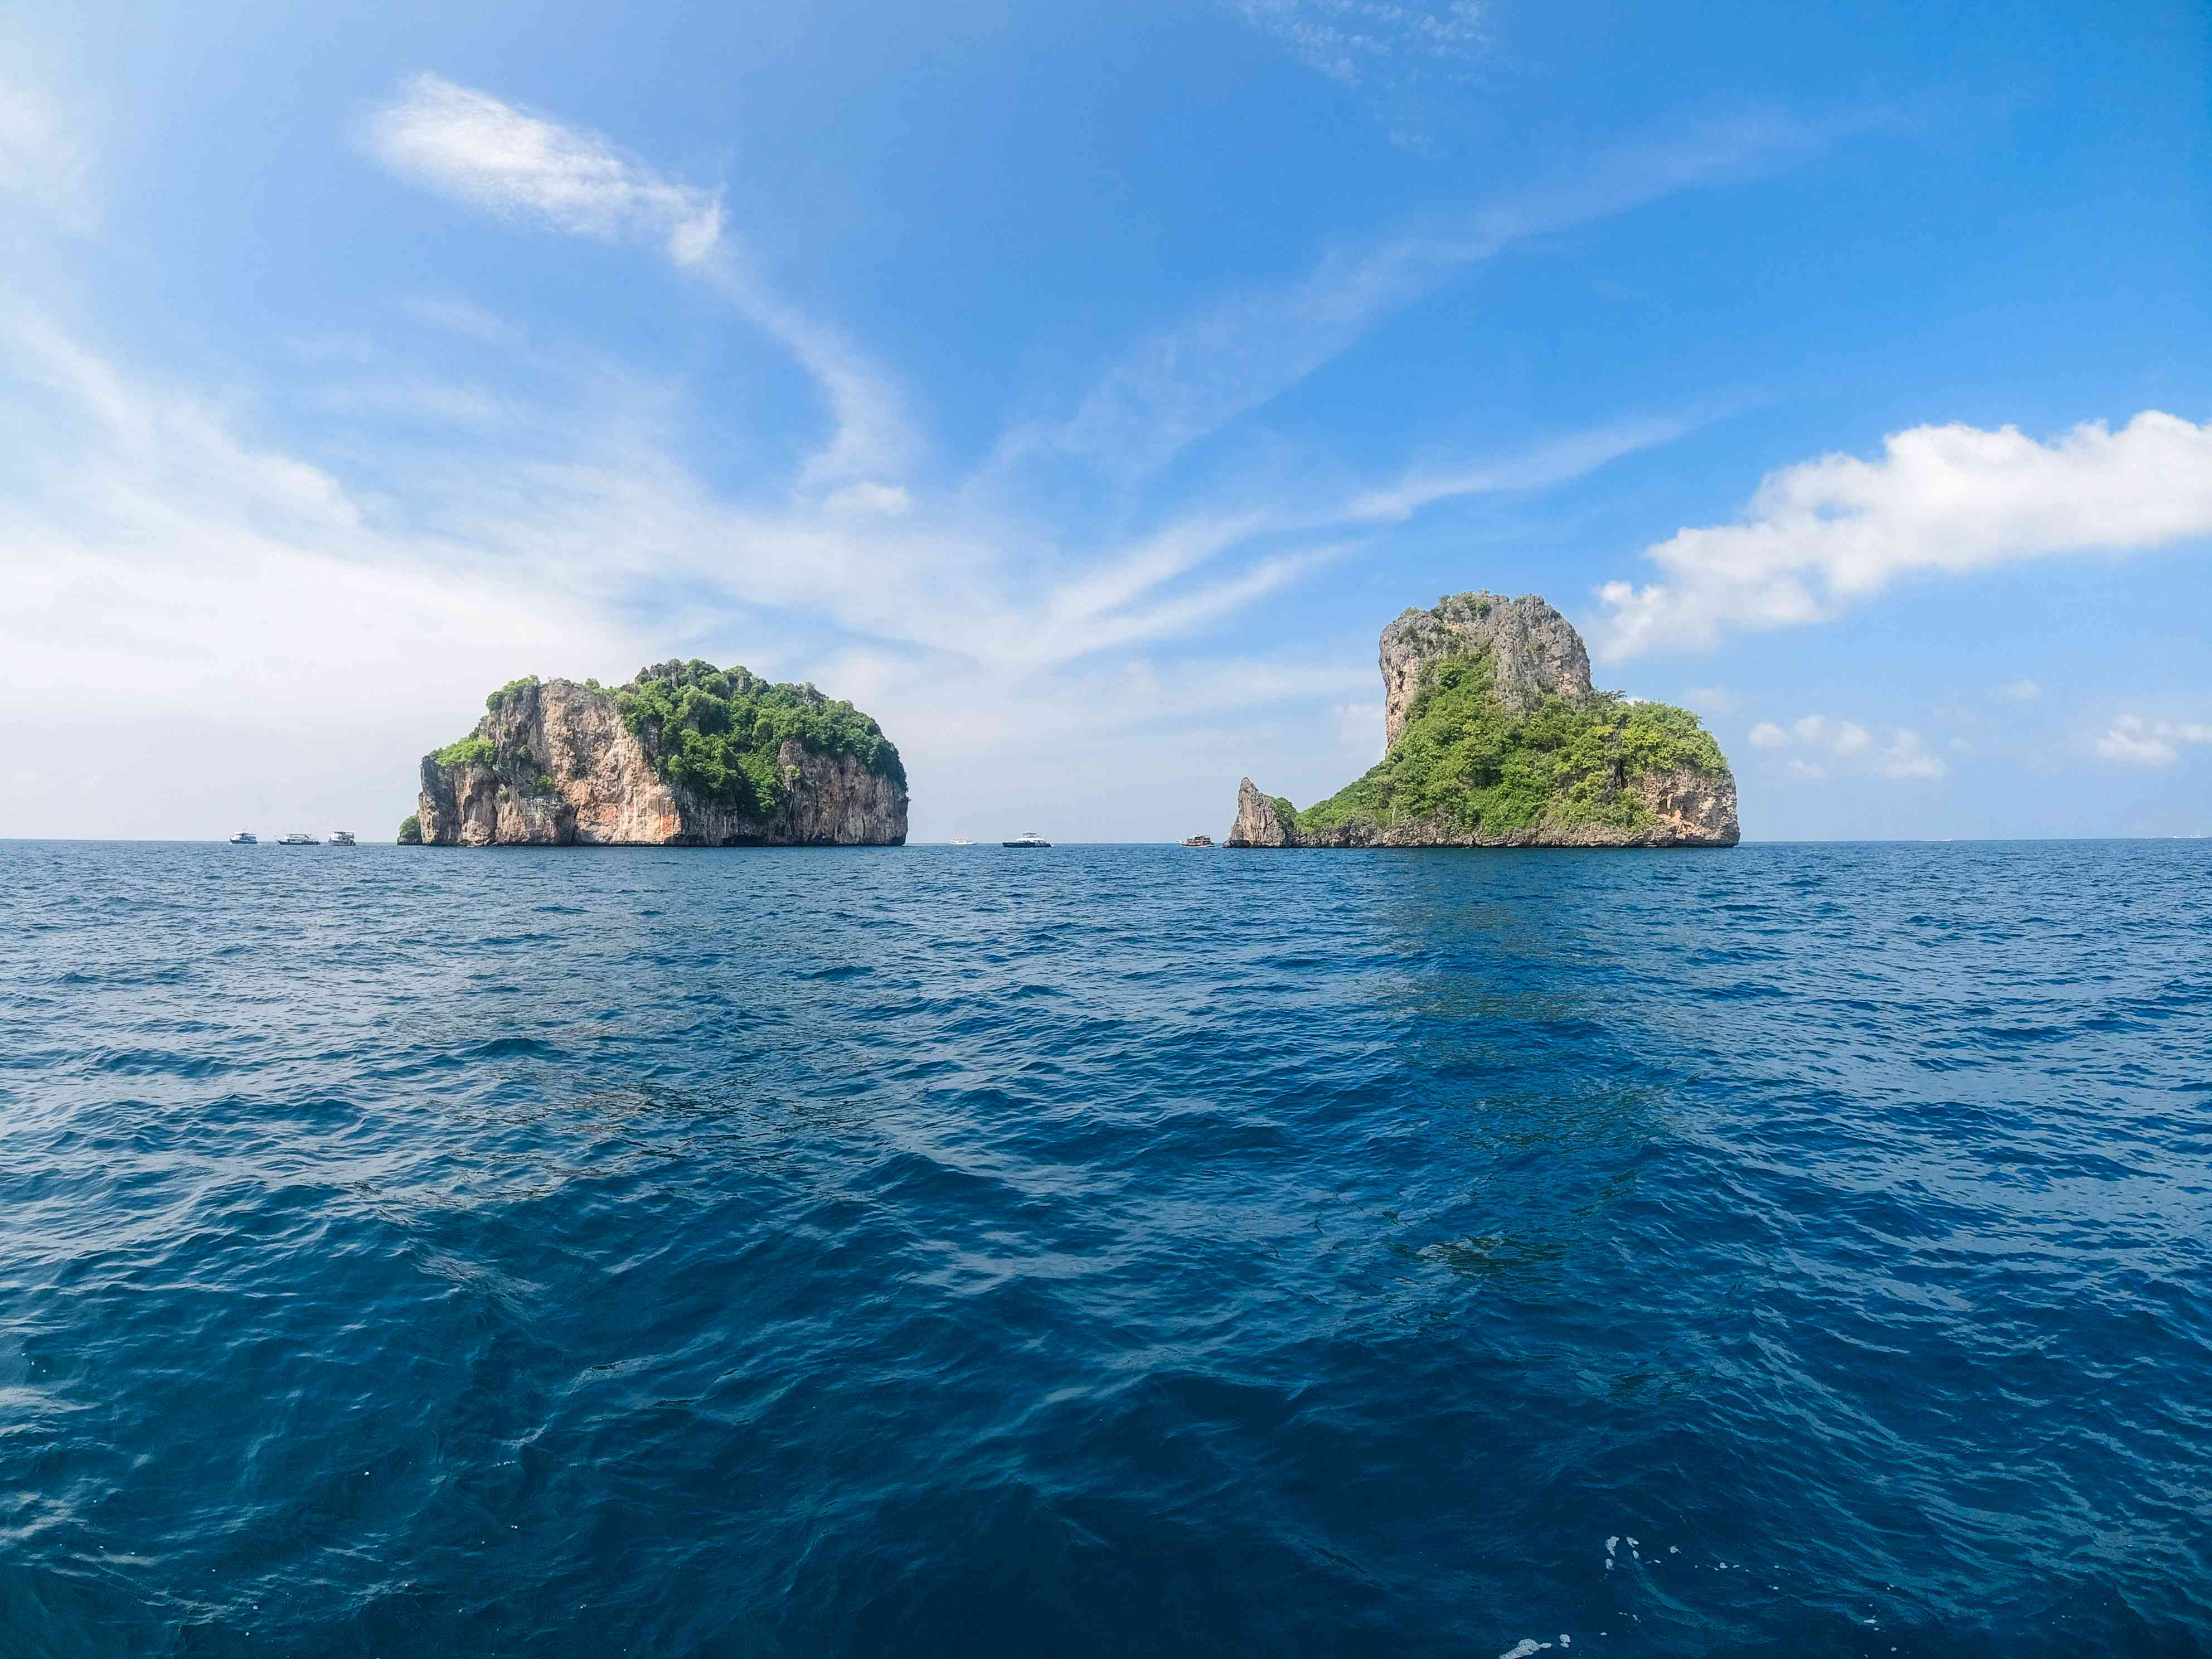 two lime stone karsts in the Phi Phi island chain in Thailand